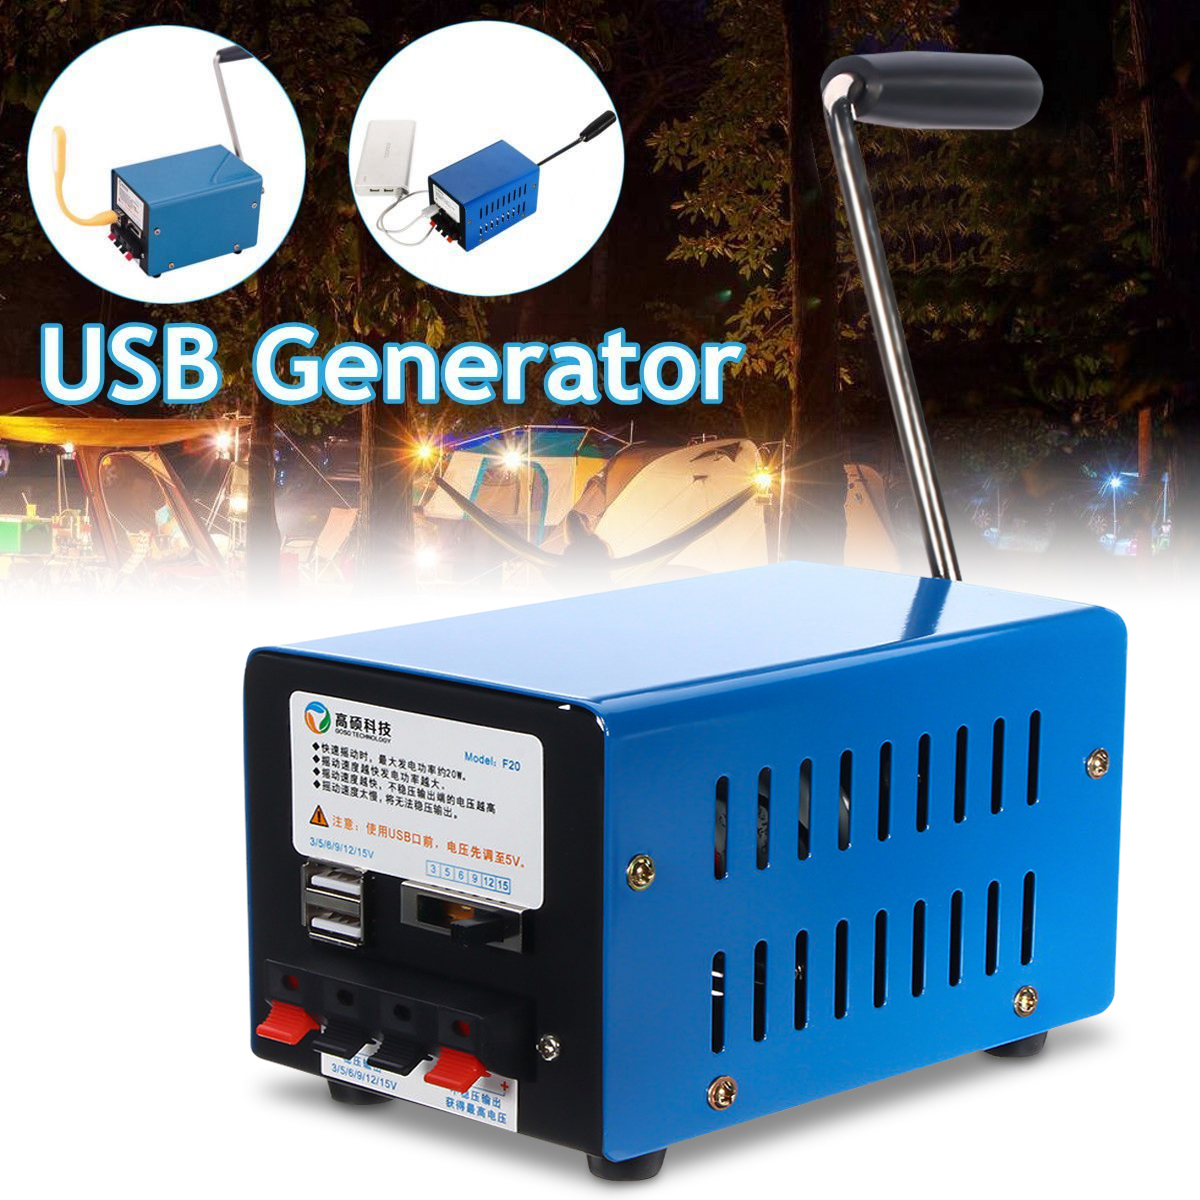 Portable Outdoor/Home Outdoor 20W Multifunction Portable Manual Crank Generator Emergency Survival Power Supply